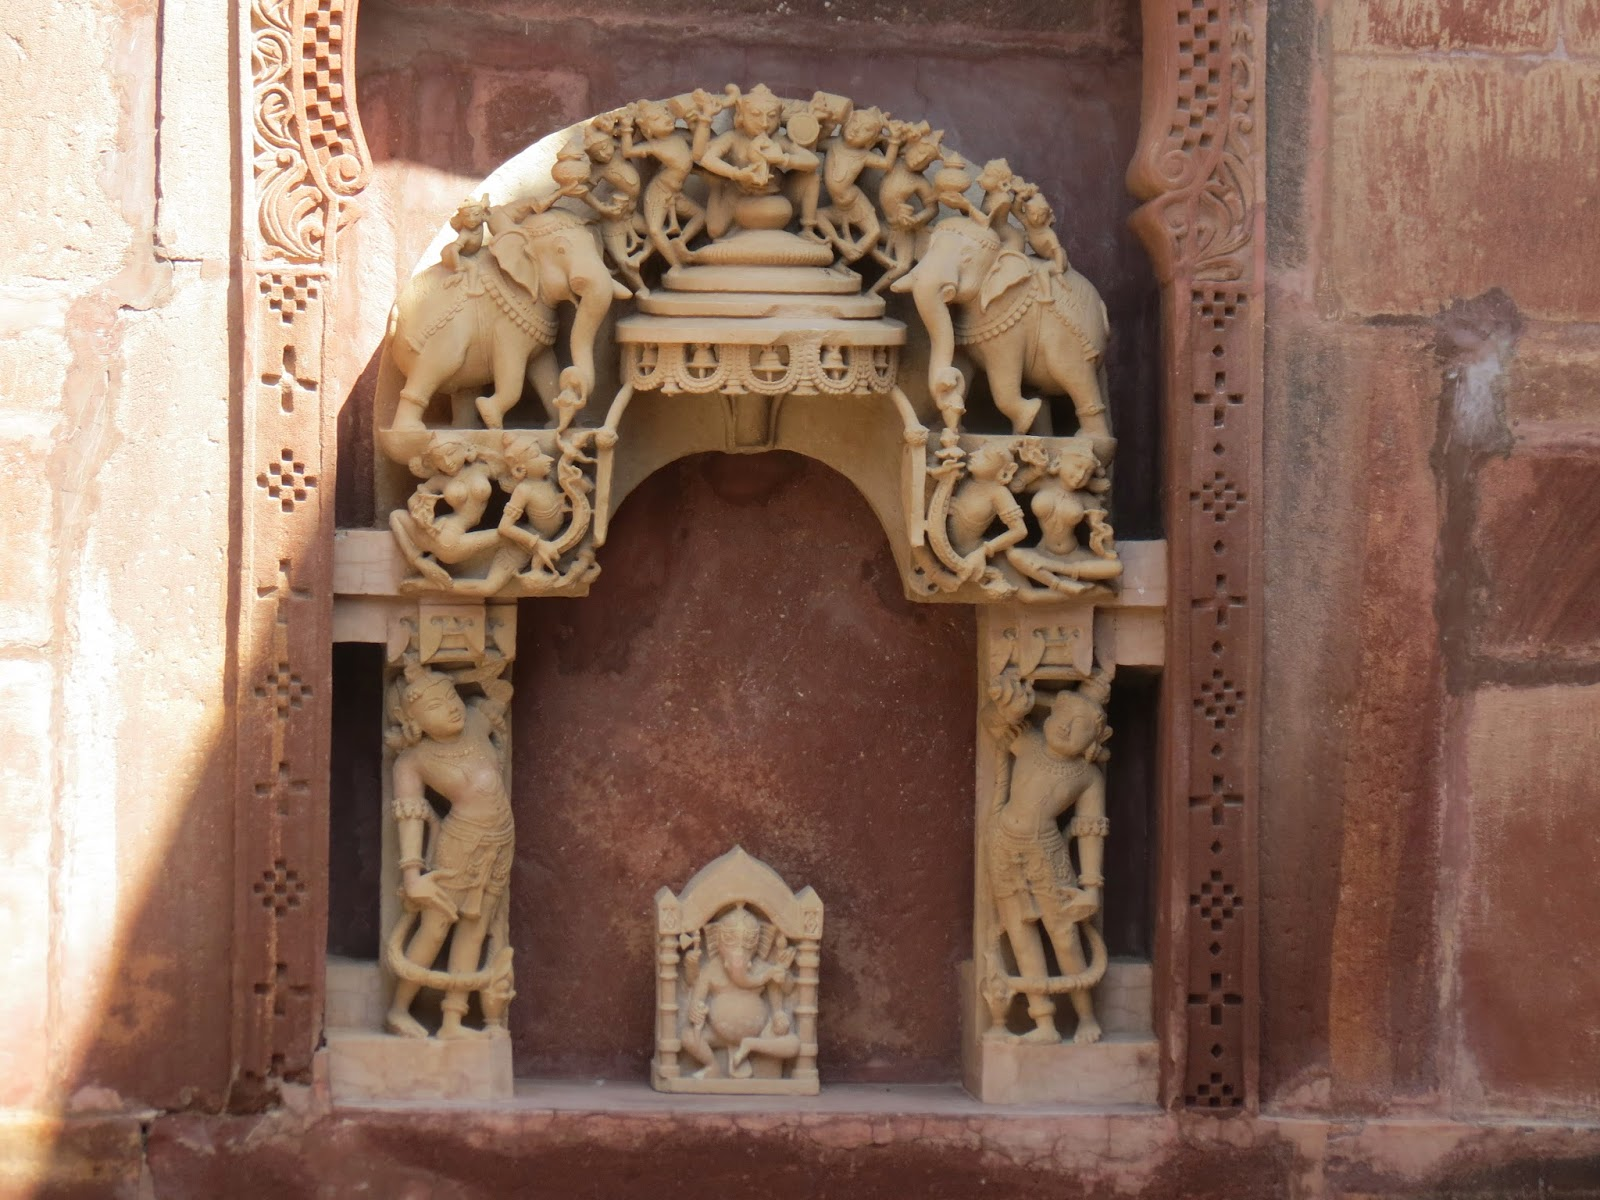 Rajasthan architecture, Jodhpur photos